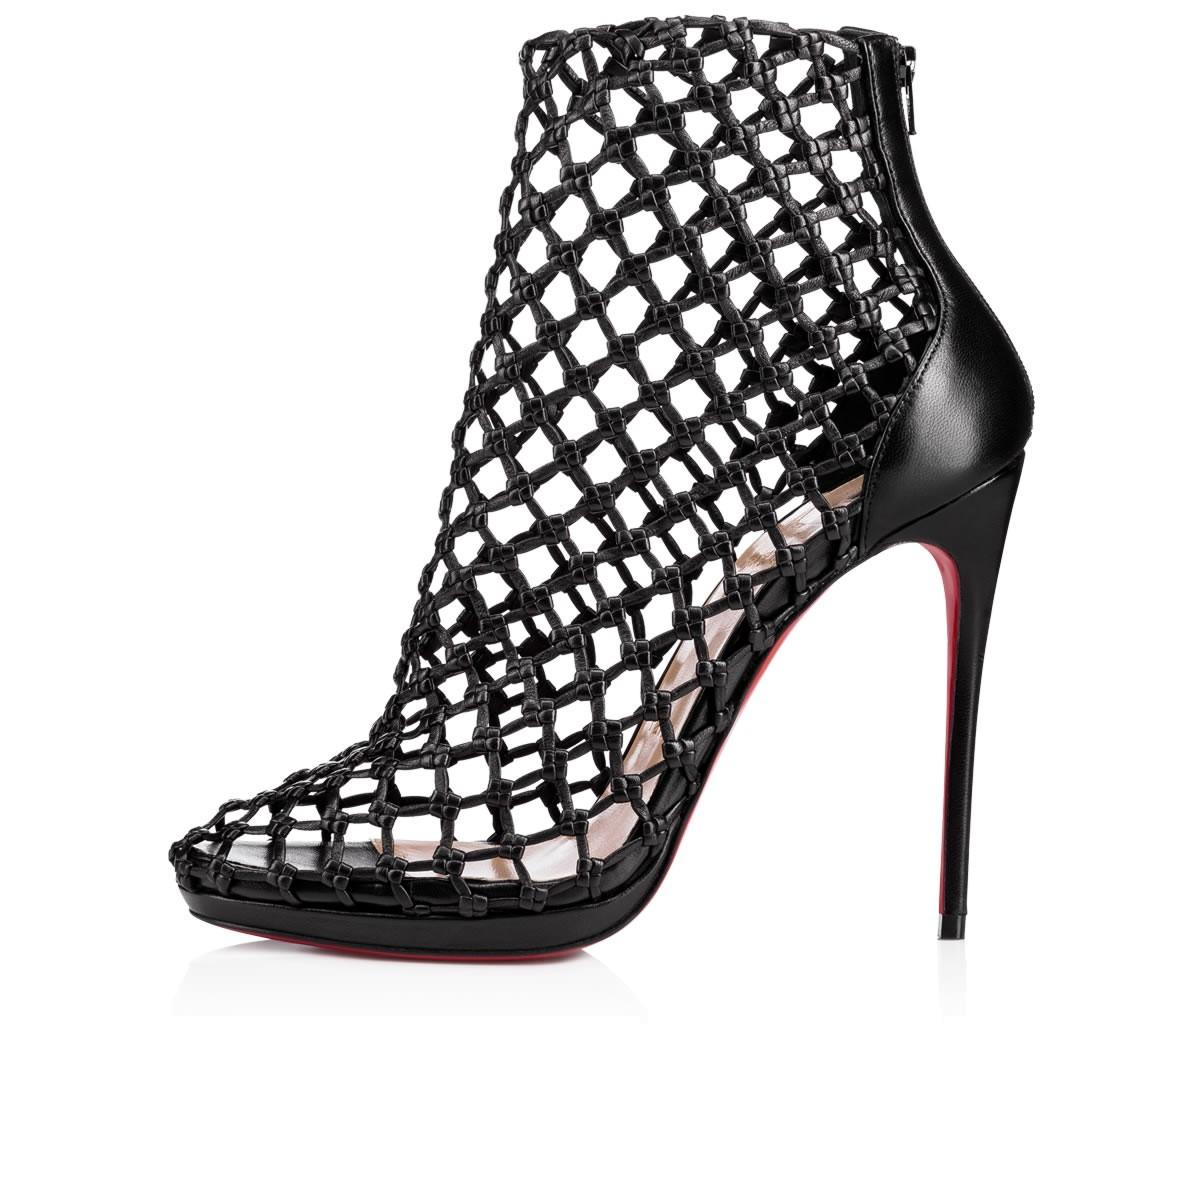 Christian Louboutin Black Porligat 120 Caged Leather Platform Ankle Heels Boots/Booties Size EU 37 (Approx. US 7) Regular (M, B)